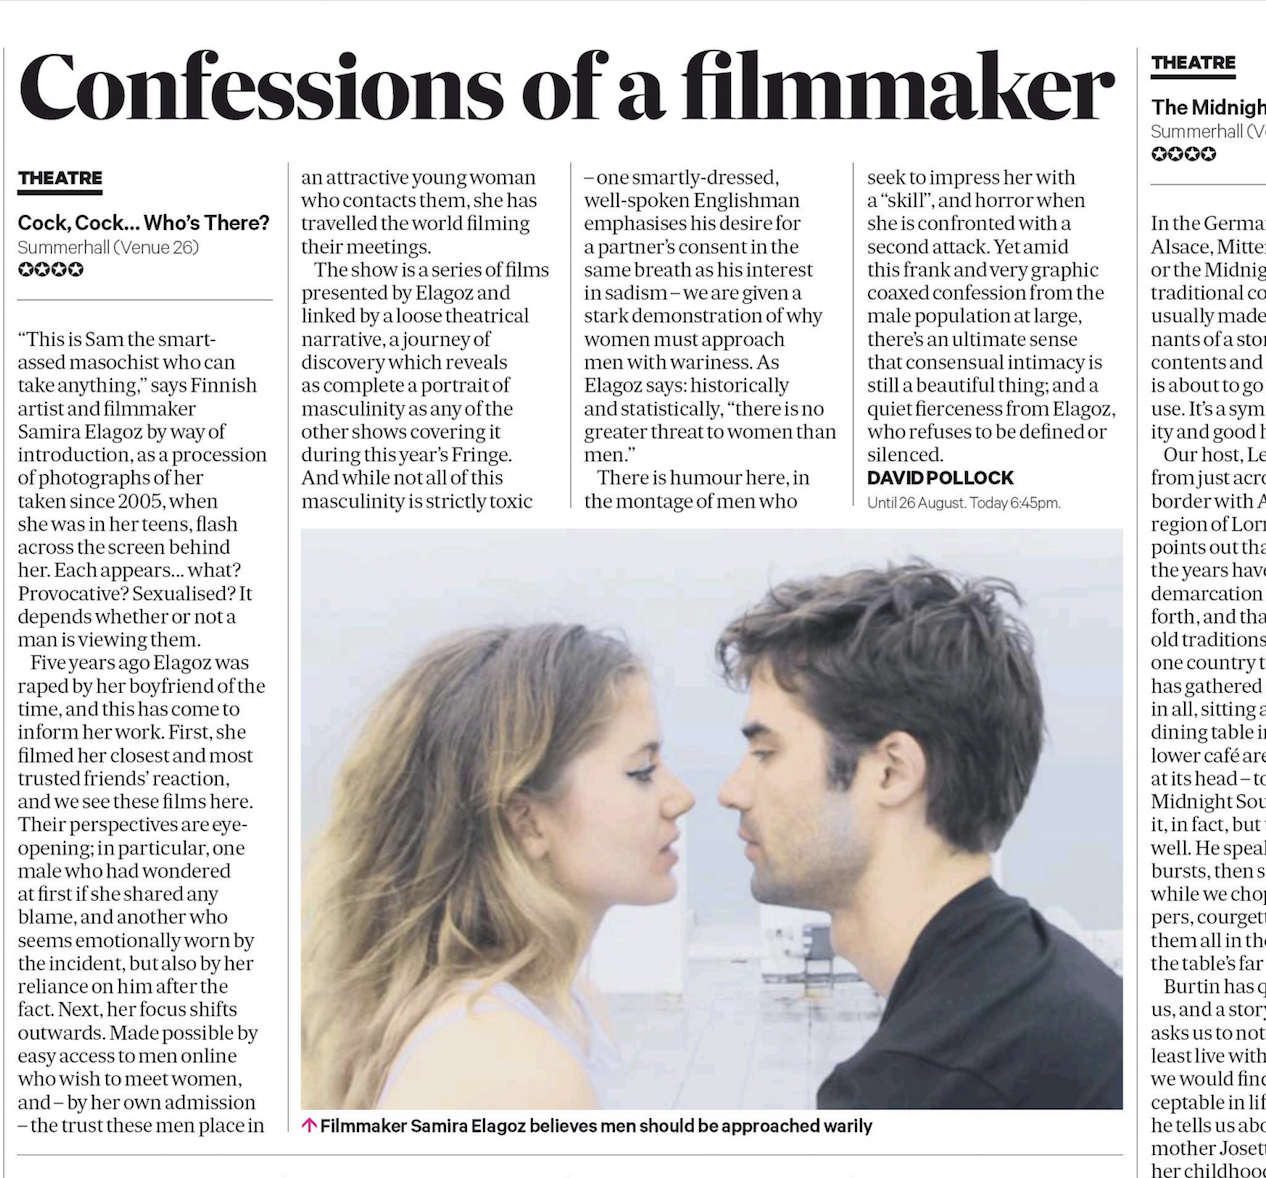 """SCOTSMAN    Review:  """"  ( ★★★★)  ..there's an ultimate sense that consensual intimacy is still a beautiful thing"""""""